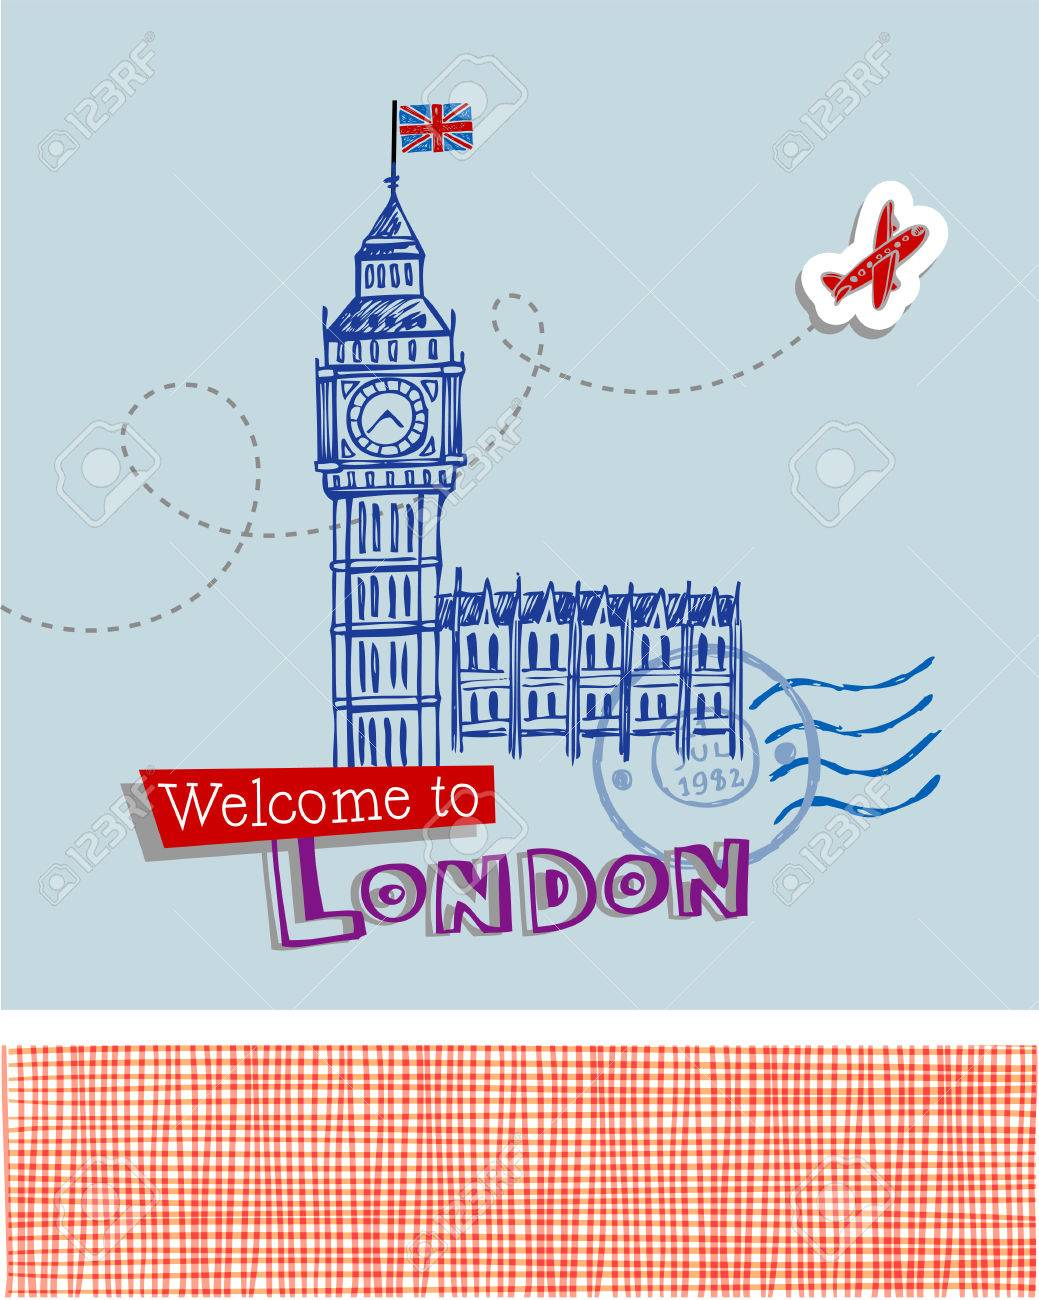 Greeting card welcome to london with main symbol of london greeting card welcome to london with main symbol of london big ben stock vector buycottarizona Gallery